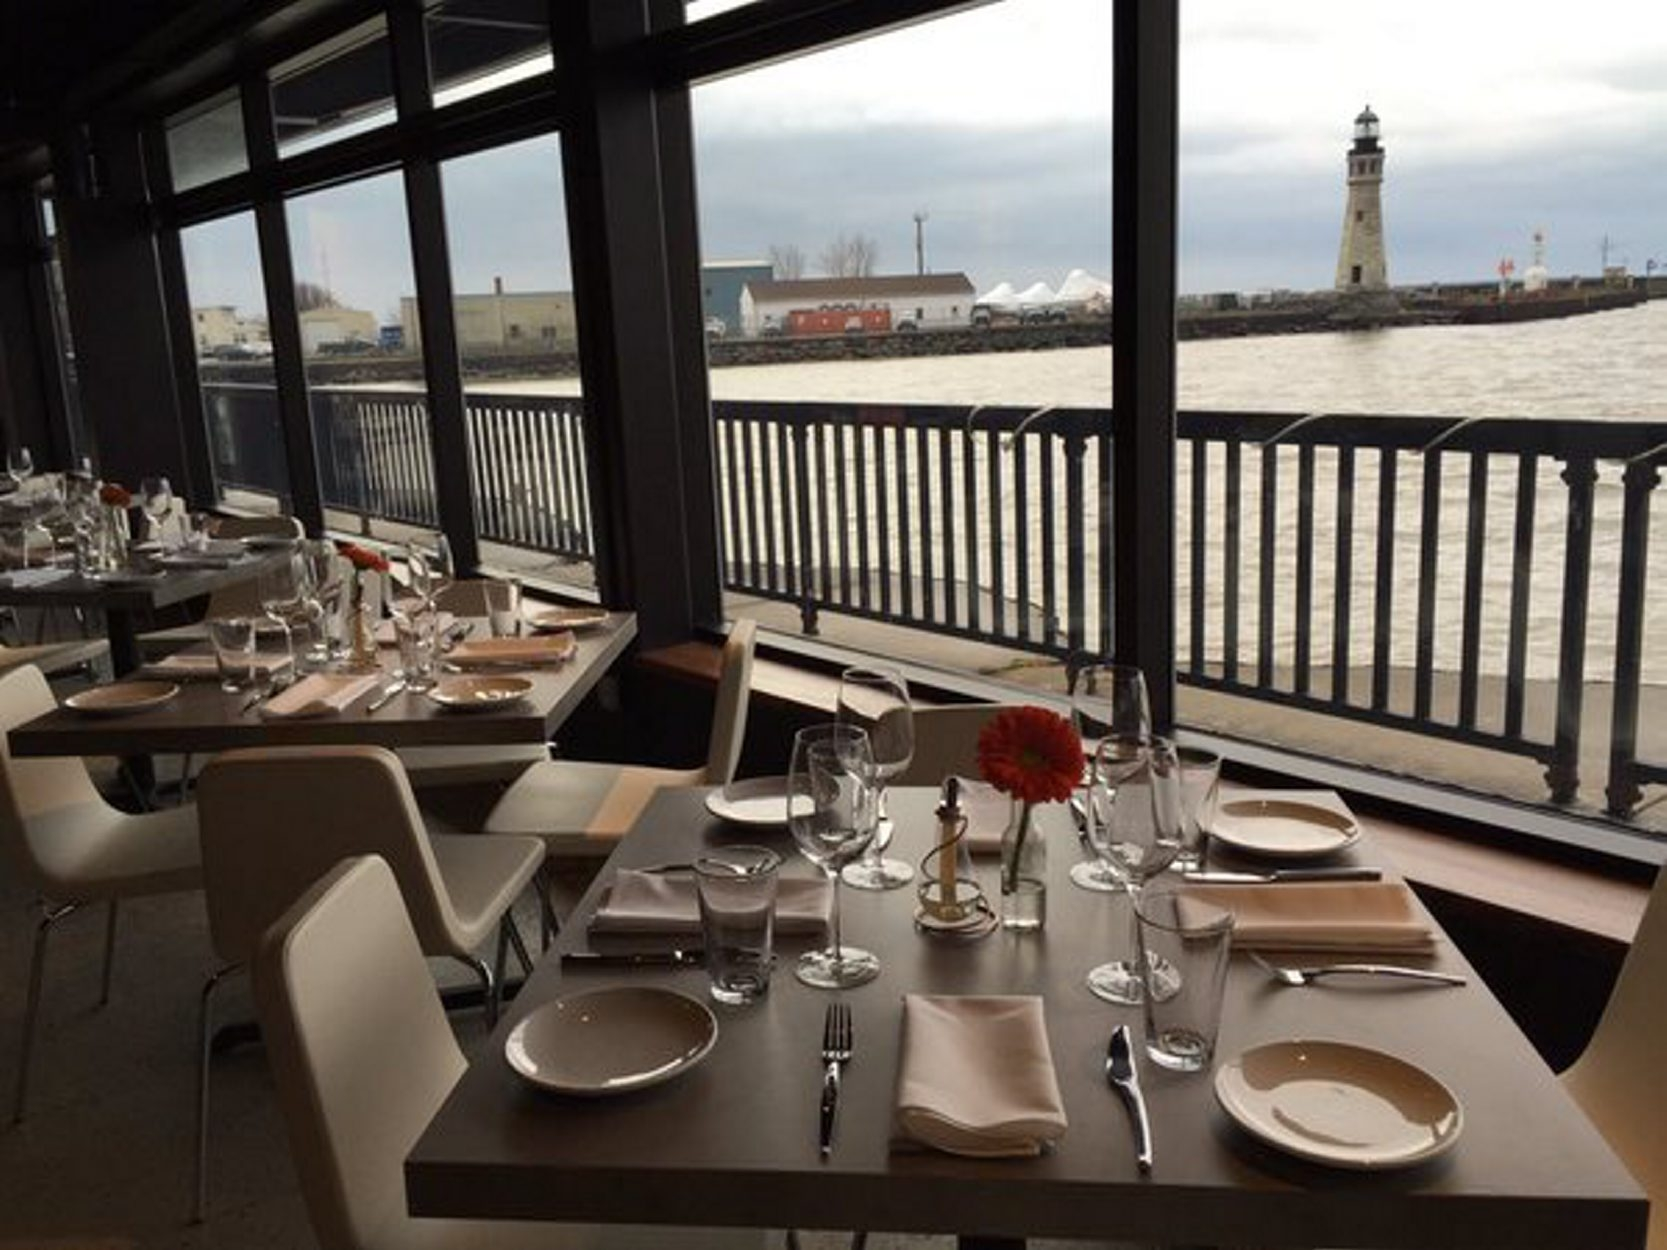 The view from William K's, the new year-round restaurant opening New Year's Eve day at the Erie Basin Marina. (Derek Gee/Buffalo News)